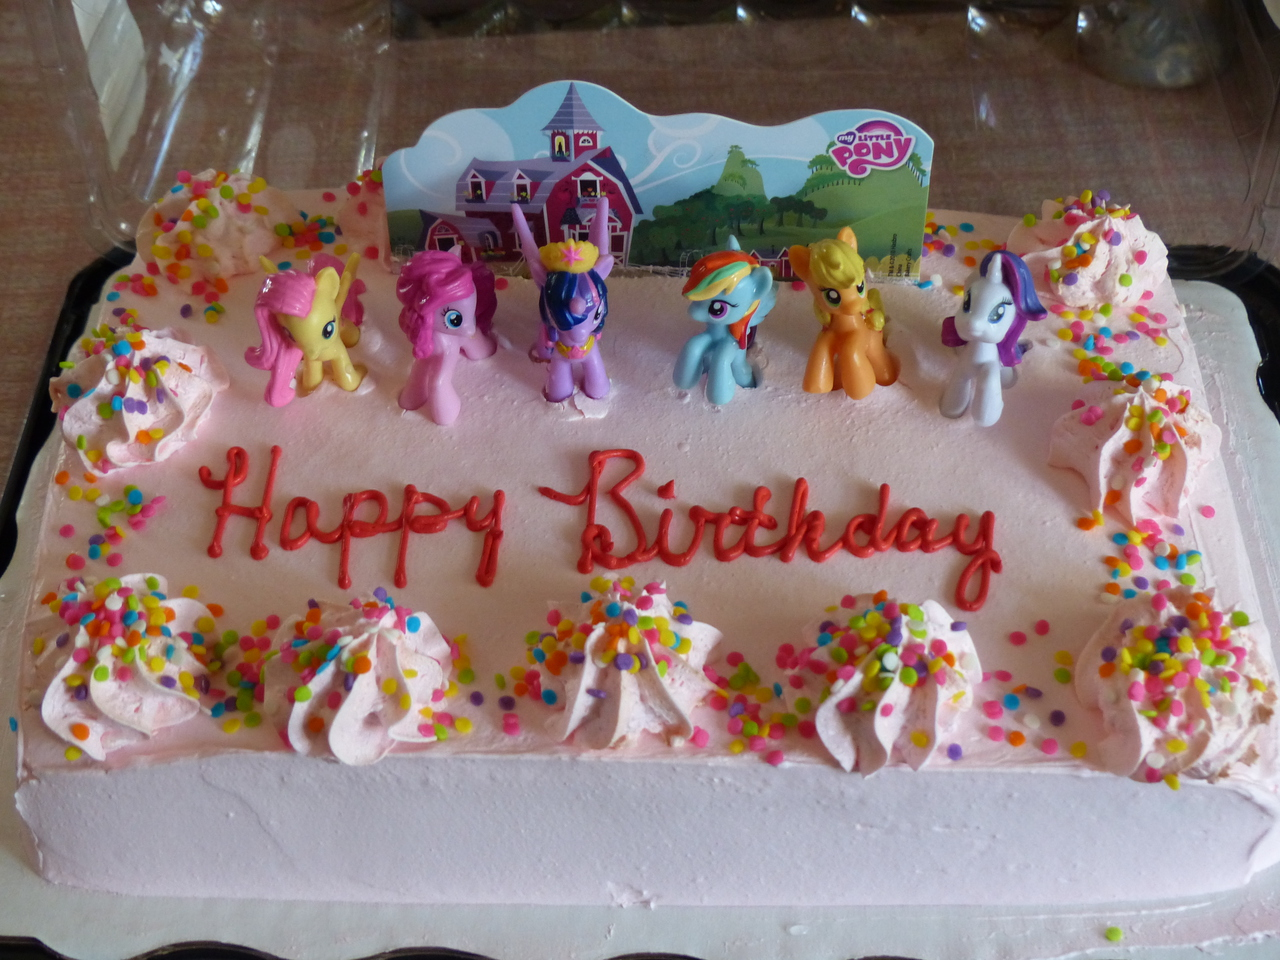 677944 alicorn applejack birthday birthday cake cake female you can click above to reveal the image just this once or changeedit your filter to allow this tag at all times publicscrutiny